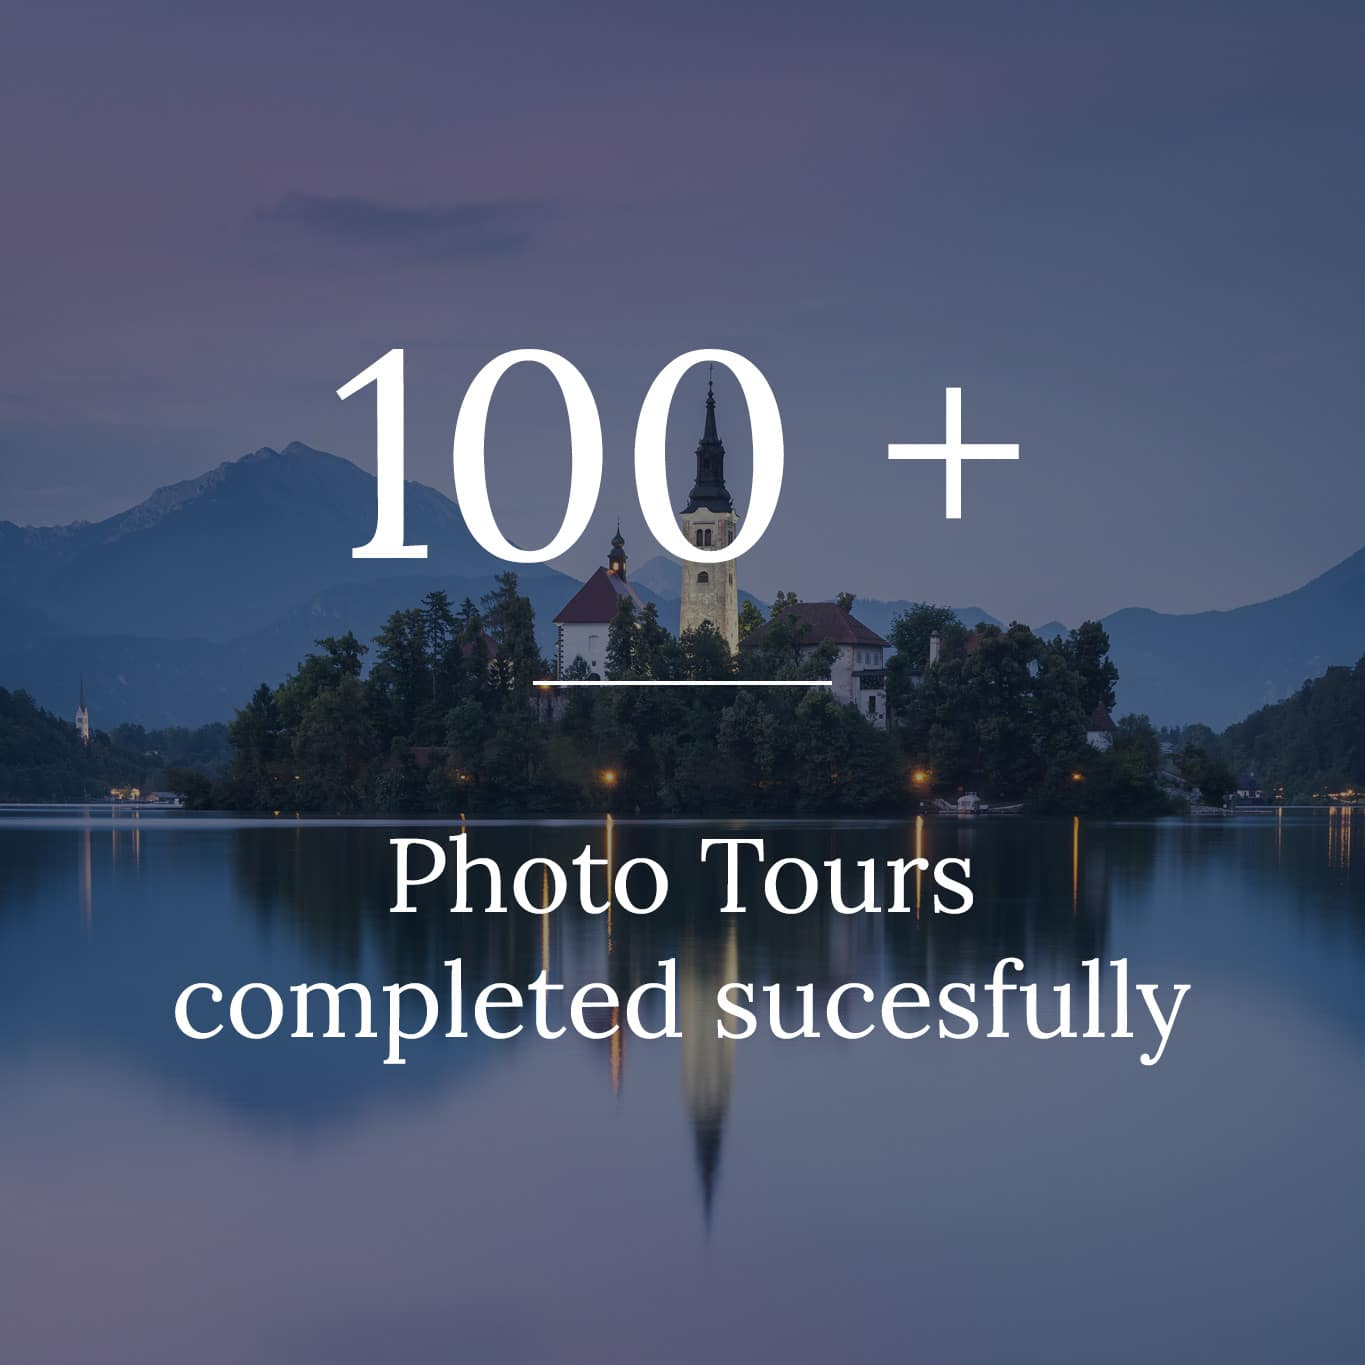 About us photo tours completed